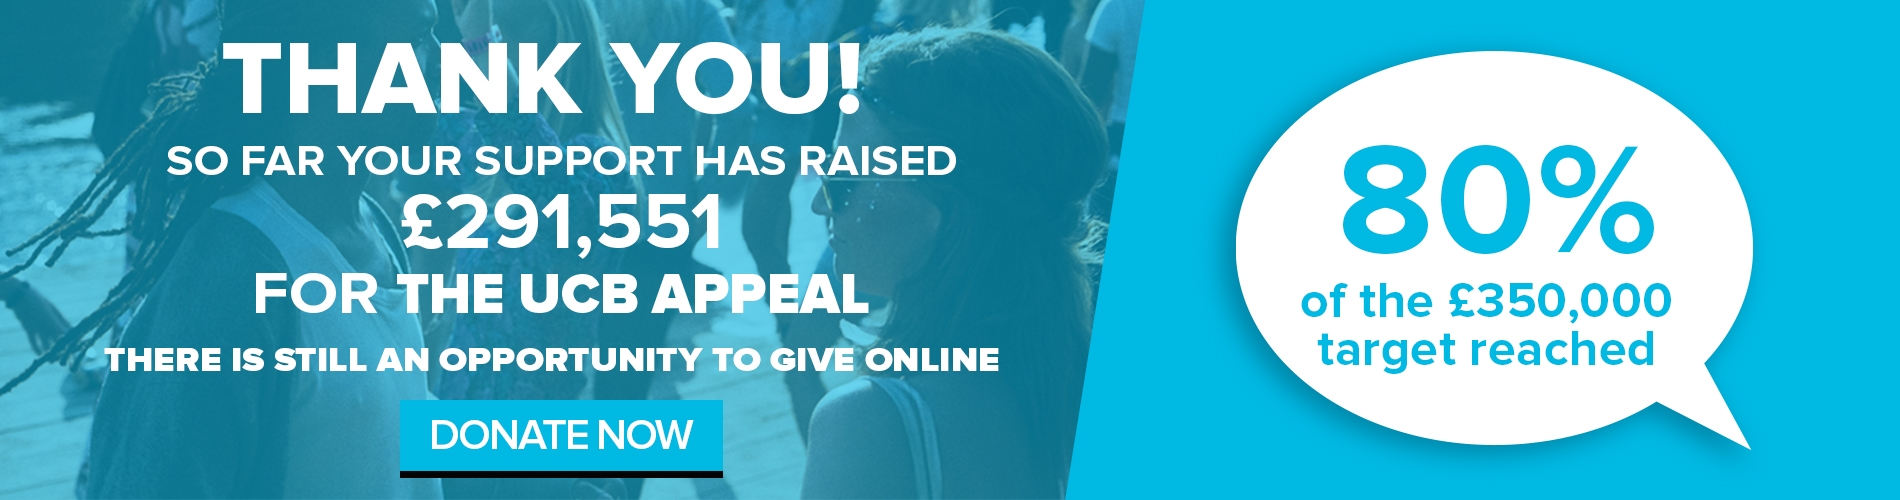 So far your support has raised £291,551 for The UCB Appeal